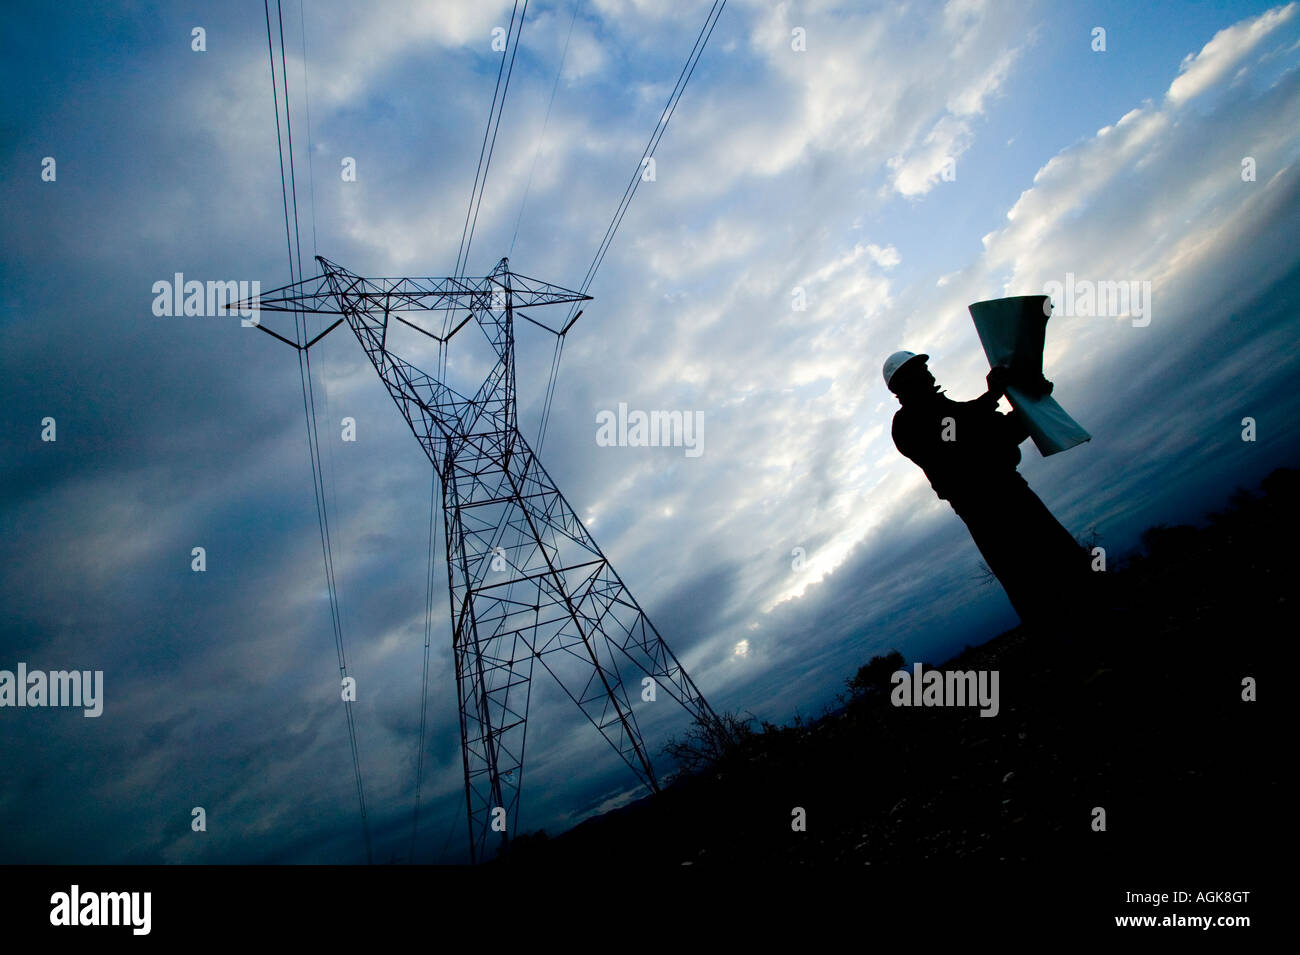 hight resolution of construction electrical worker studies plans beneath high voltage power lines stock image